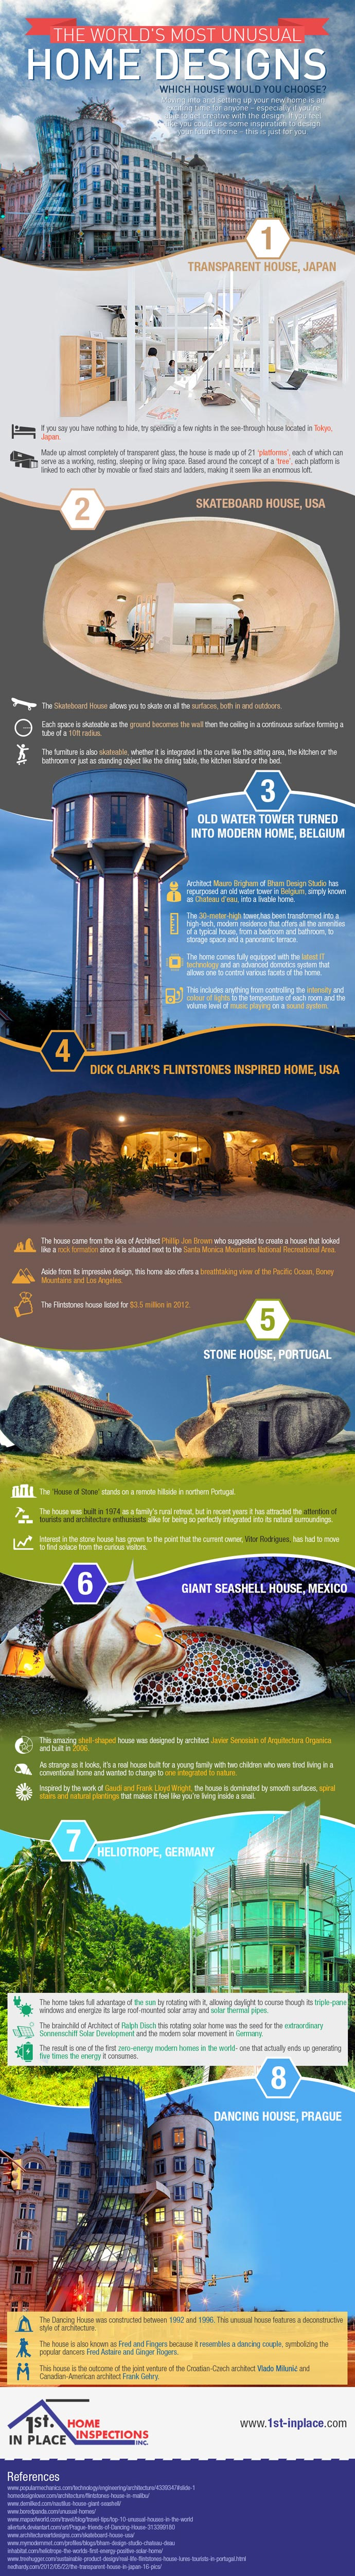 [Infographic]  - The World's Most Unusual Home Designs